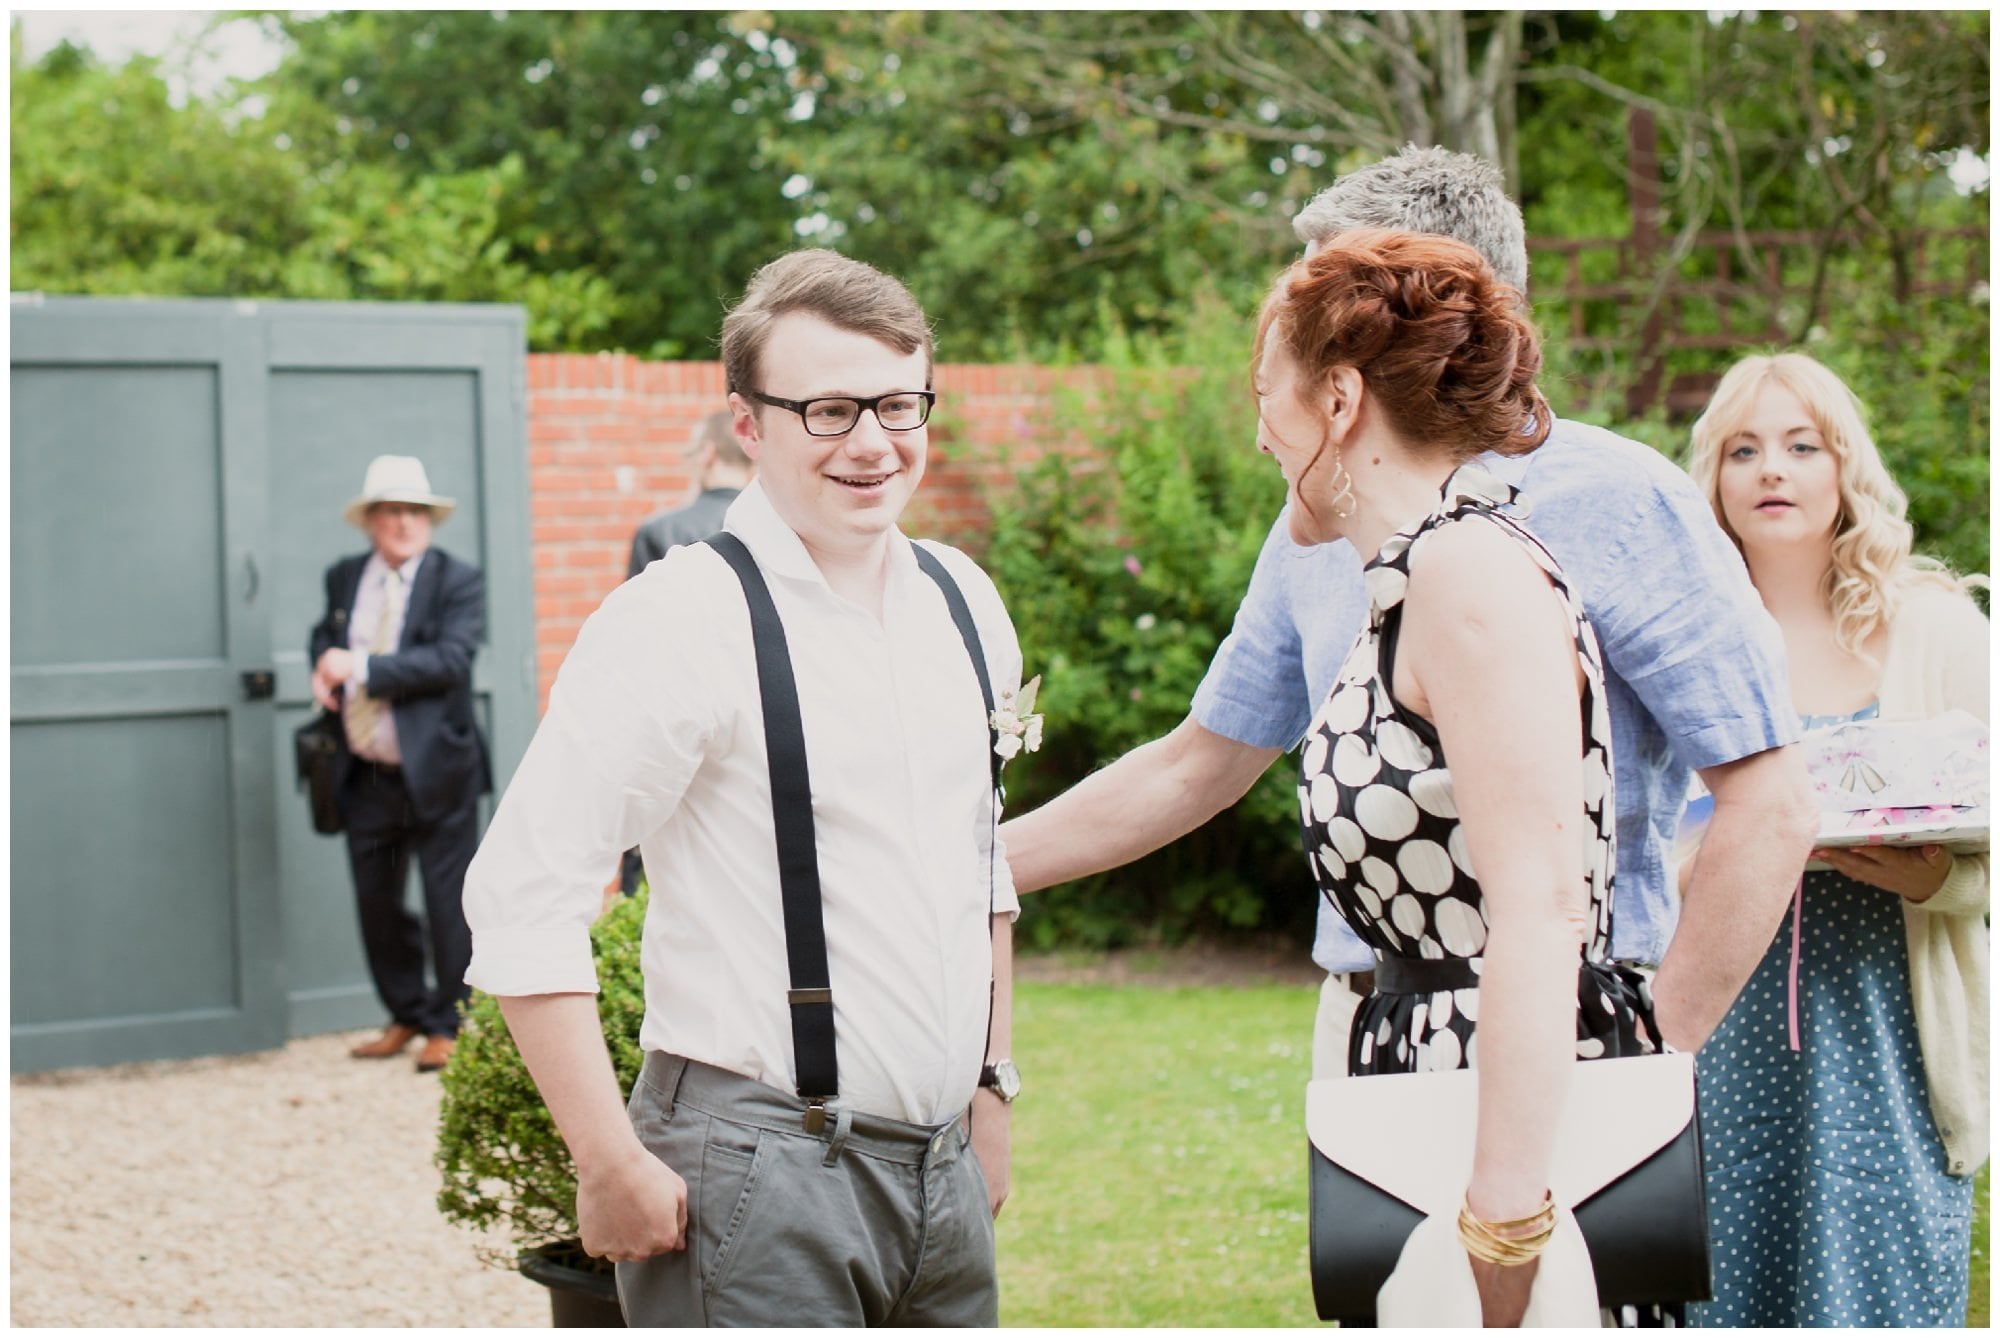 Groom at The Old Vicarage